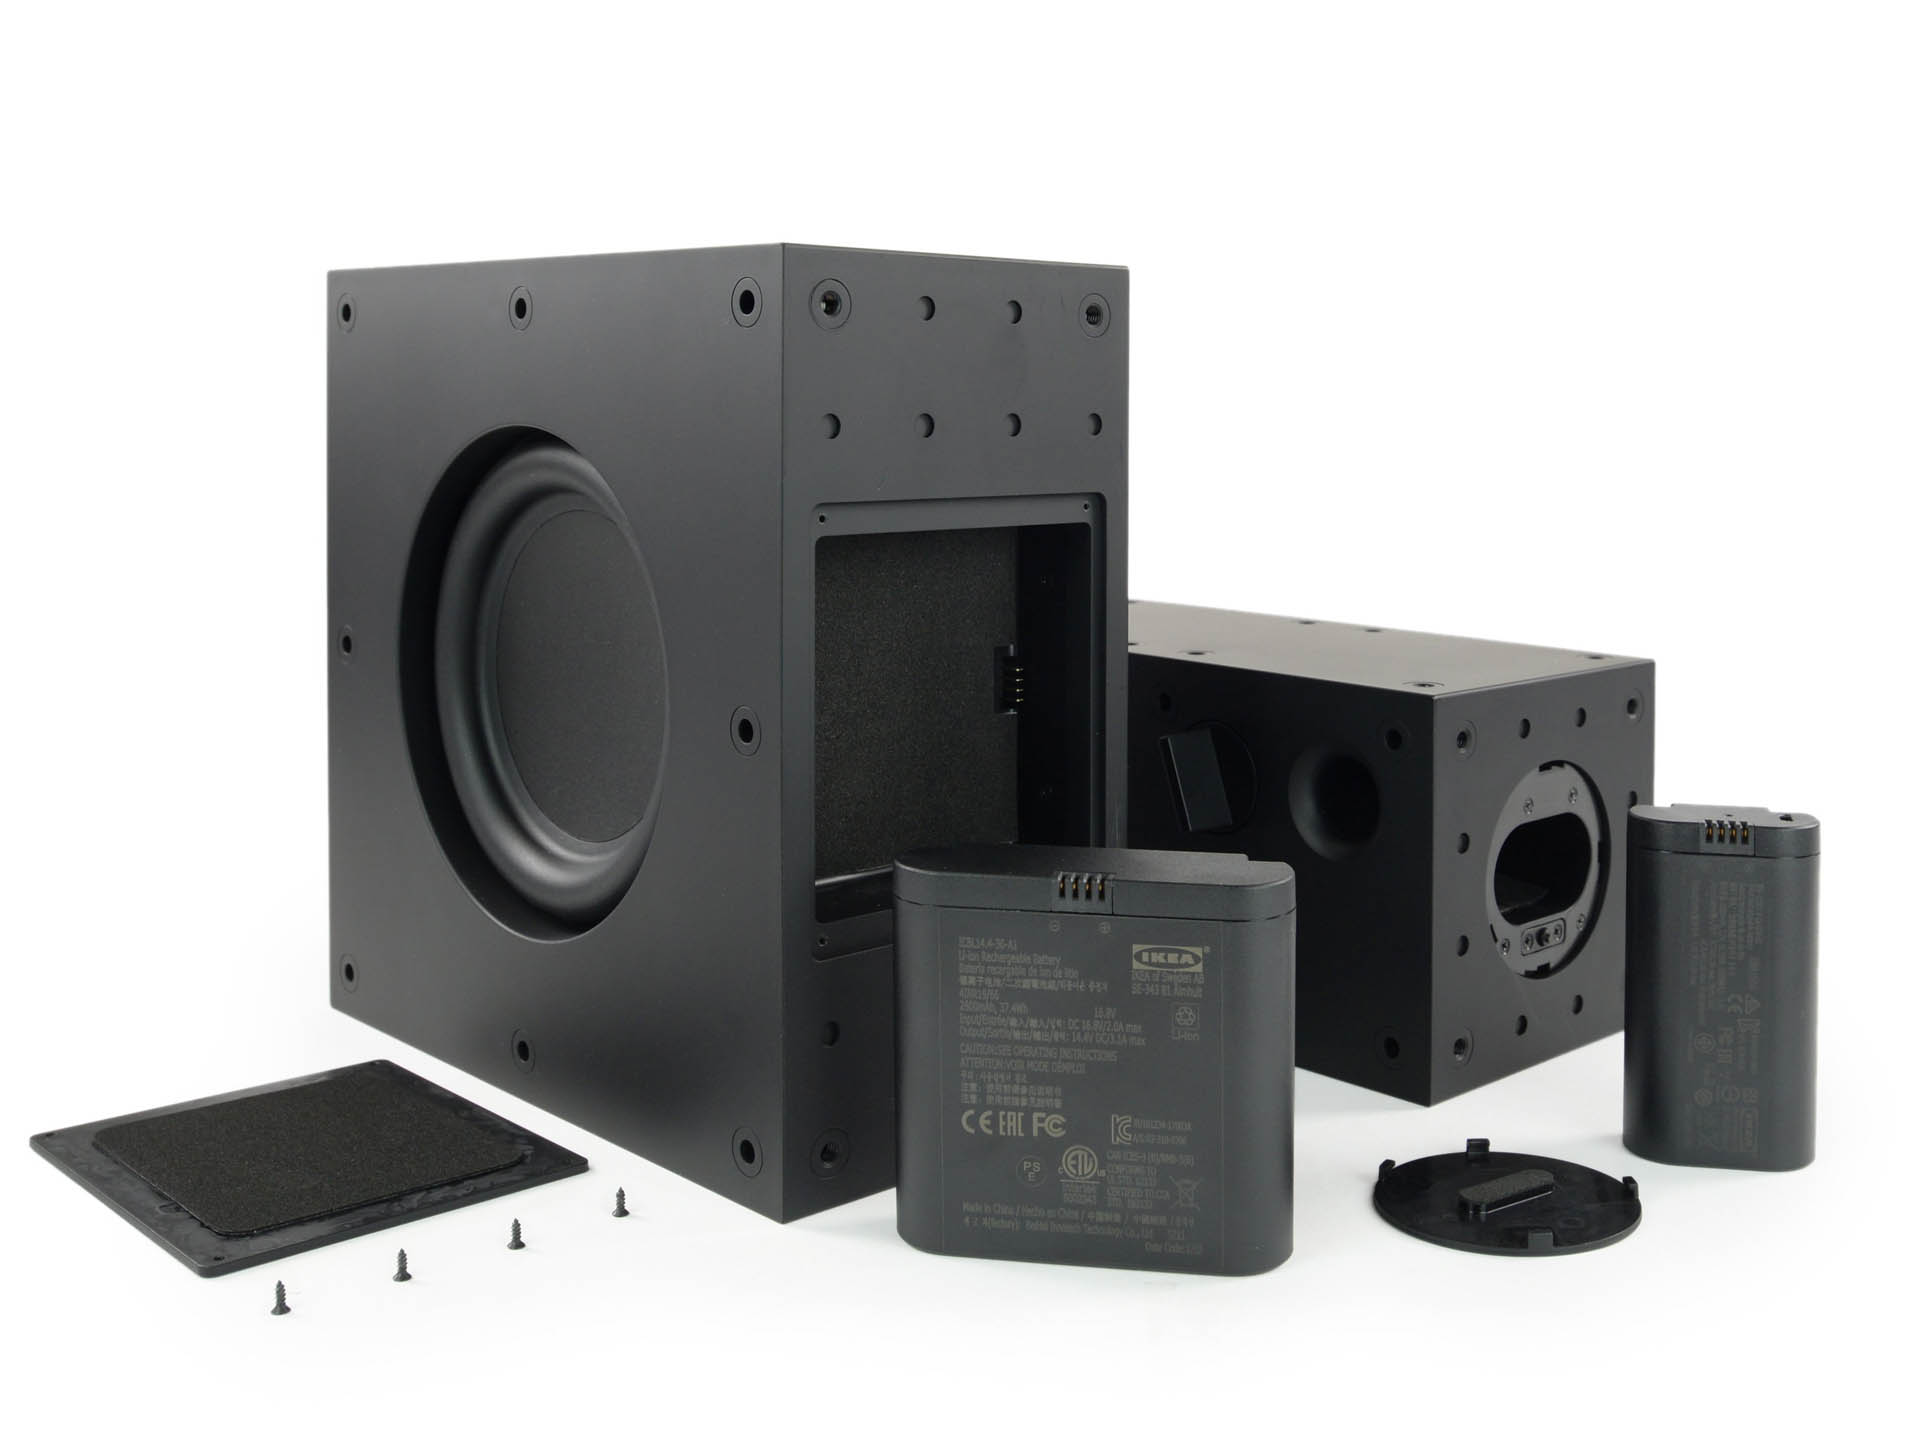 IKEA's FREKVENS combo speakers, with their battery packs removed.